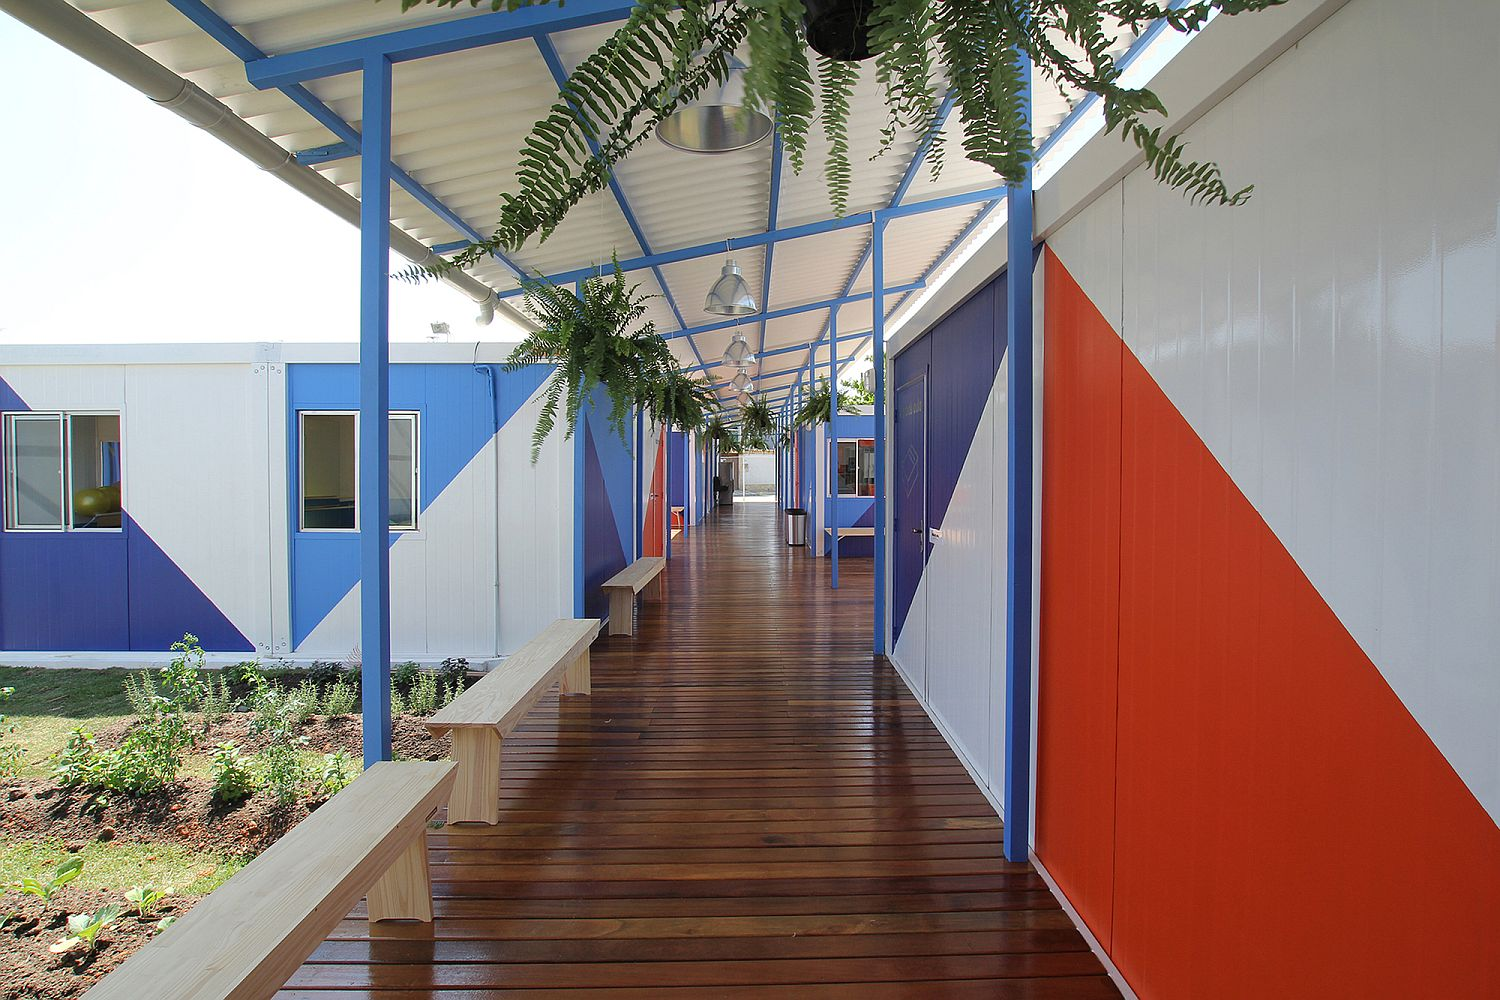 Long-and-sheltered-corridors-of-the-social-center